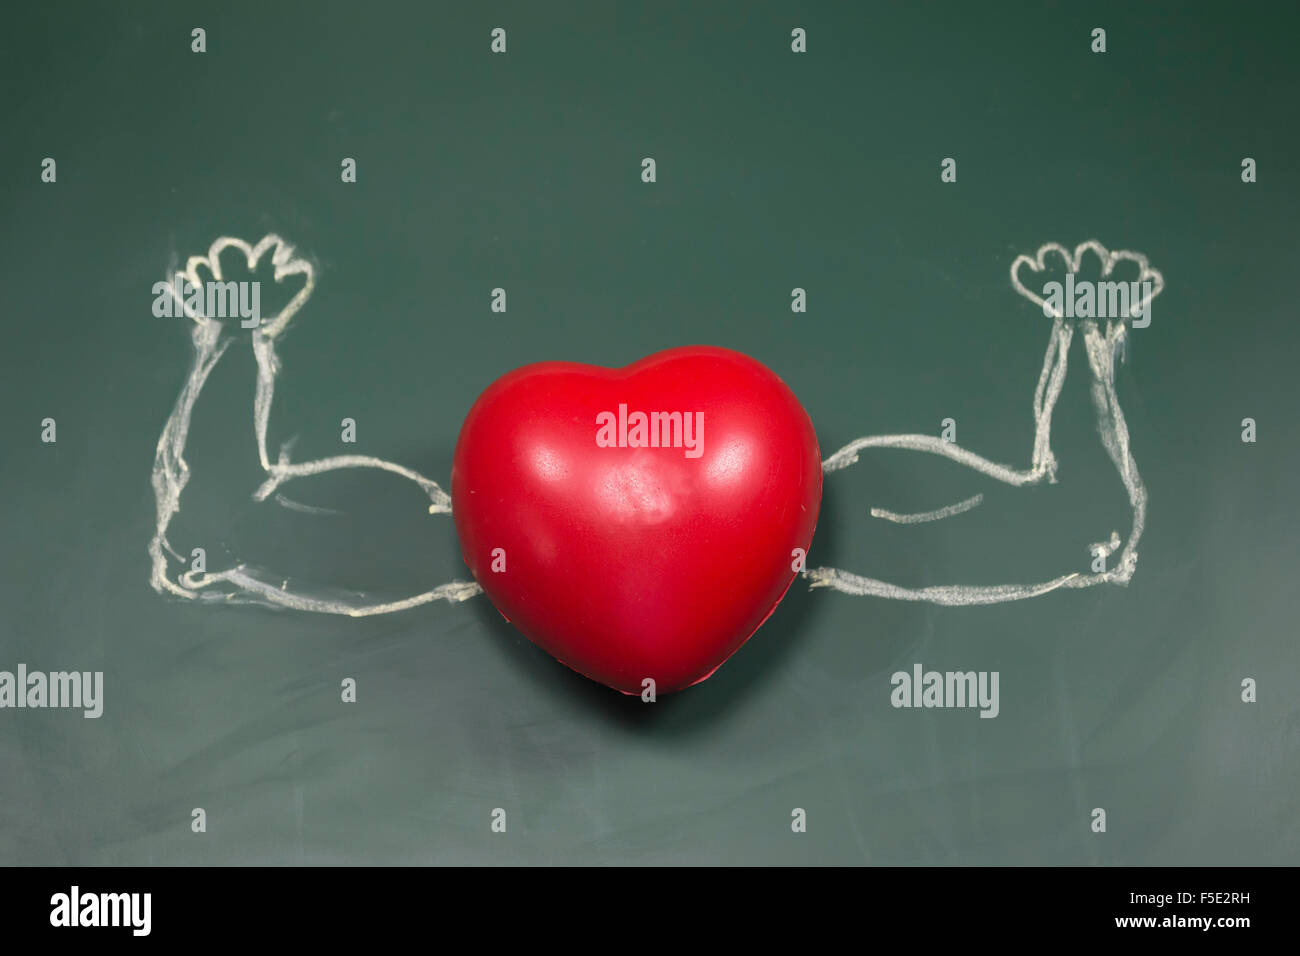 Red foam shape heart with muscle hands drawn chalk attached to it on green board - Stock Image